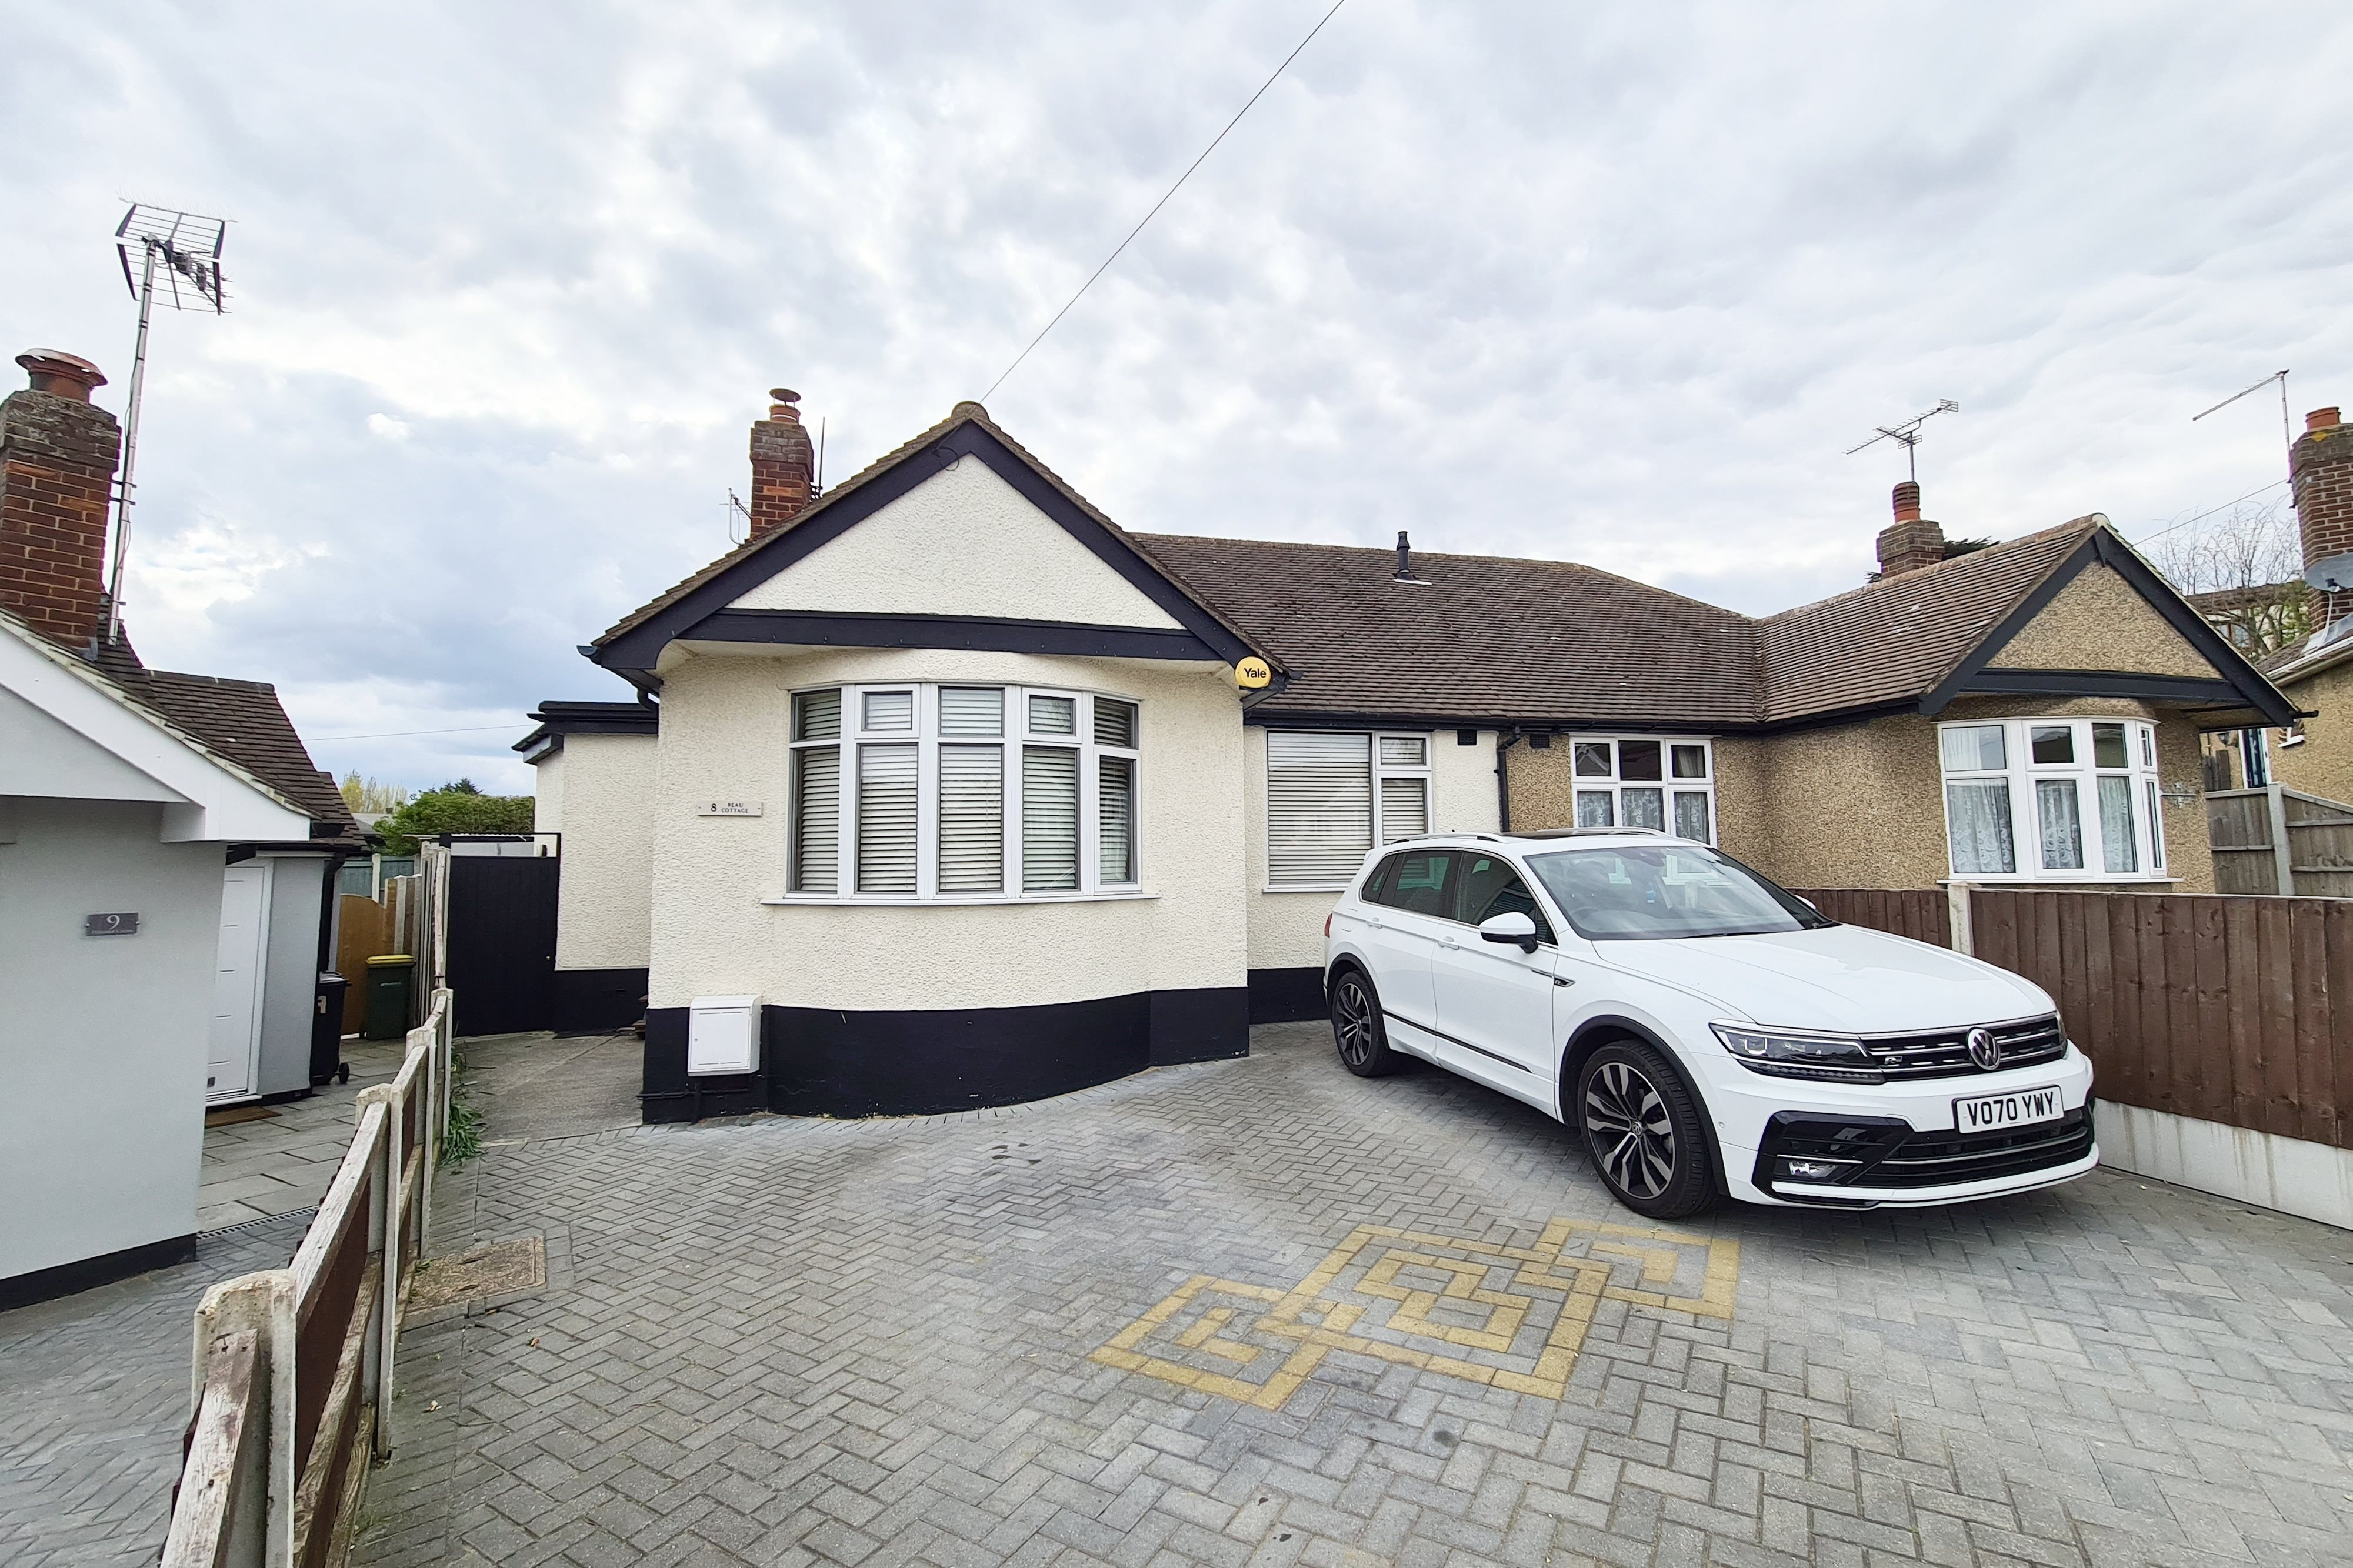 3 bed semi-detached bungalow to rent in Humber Close, Rayleigh, SS6